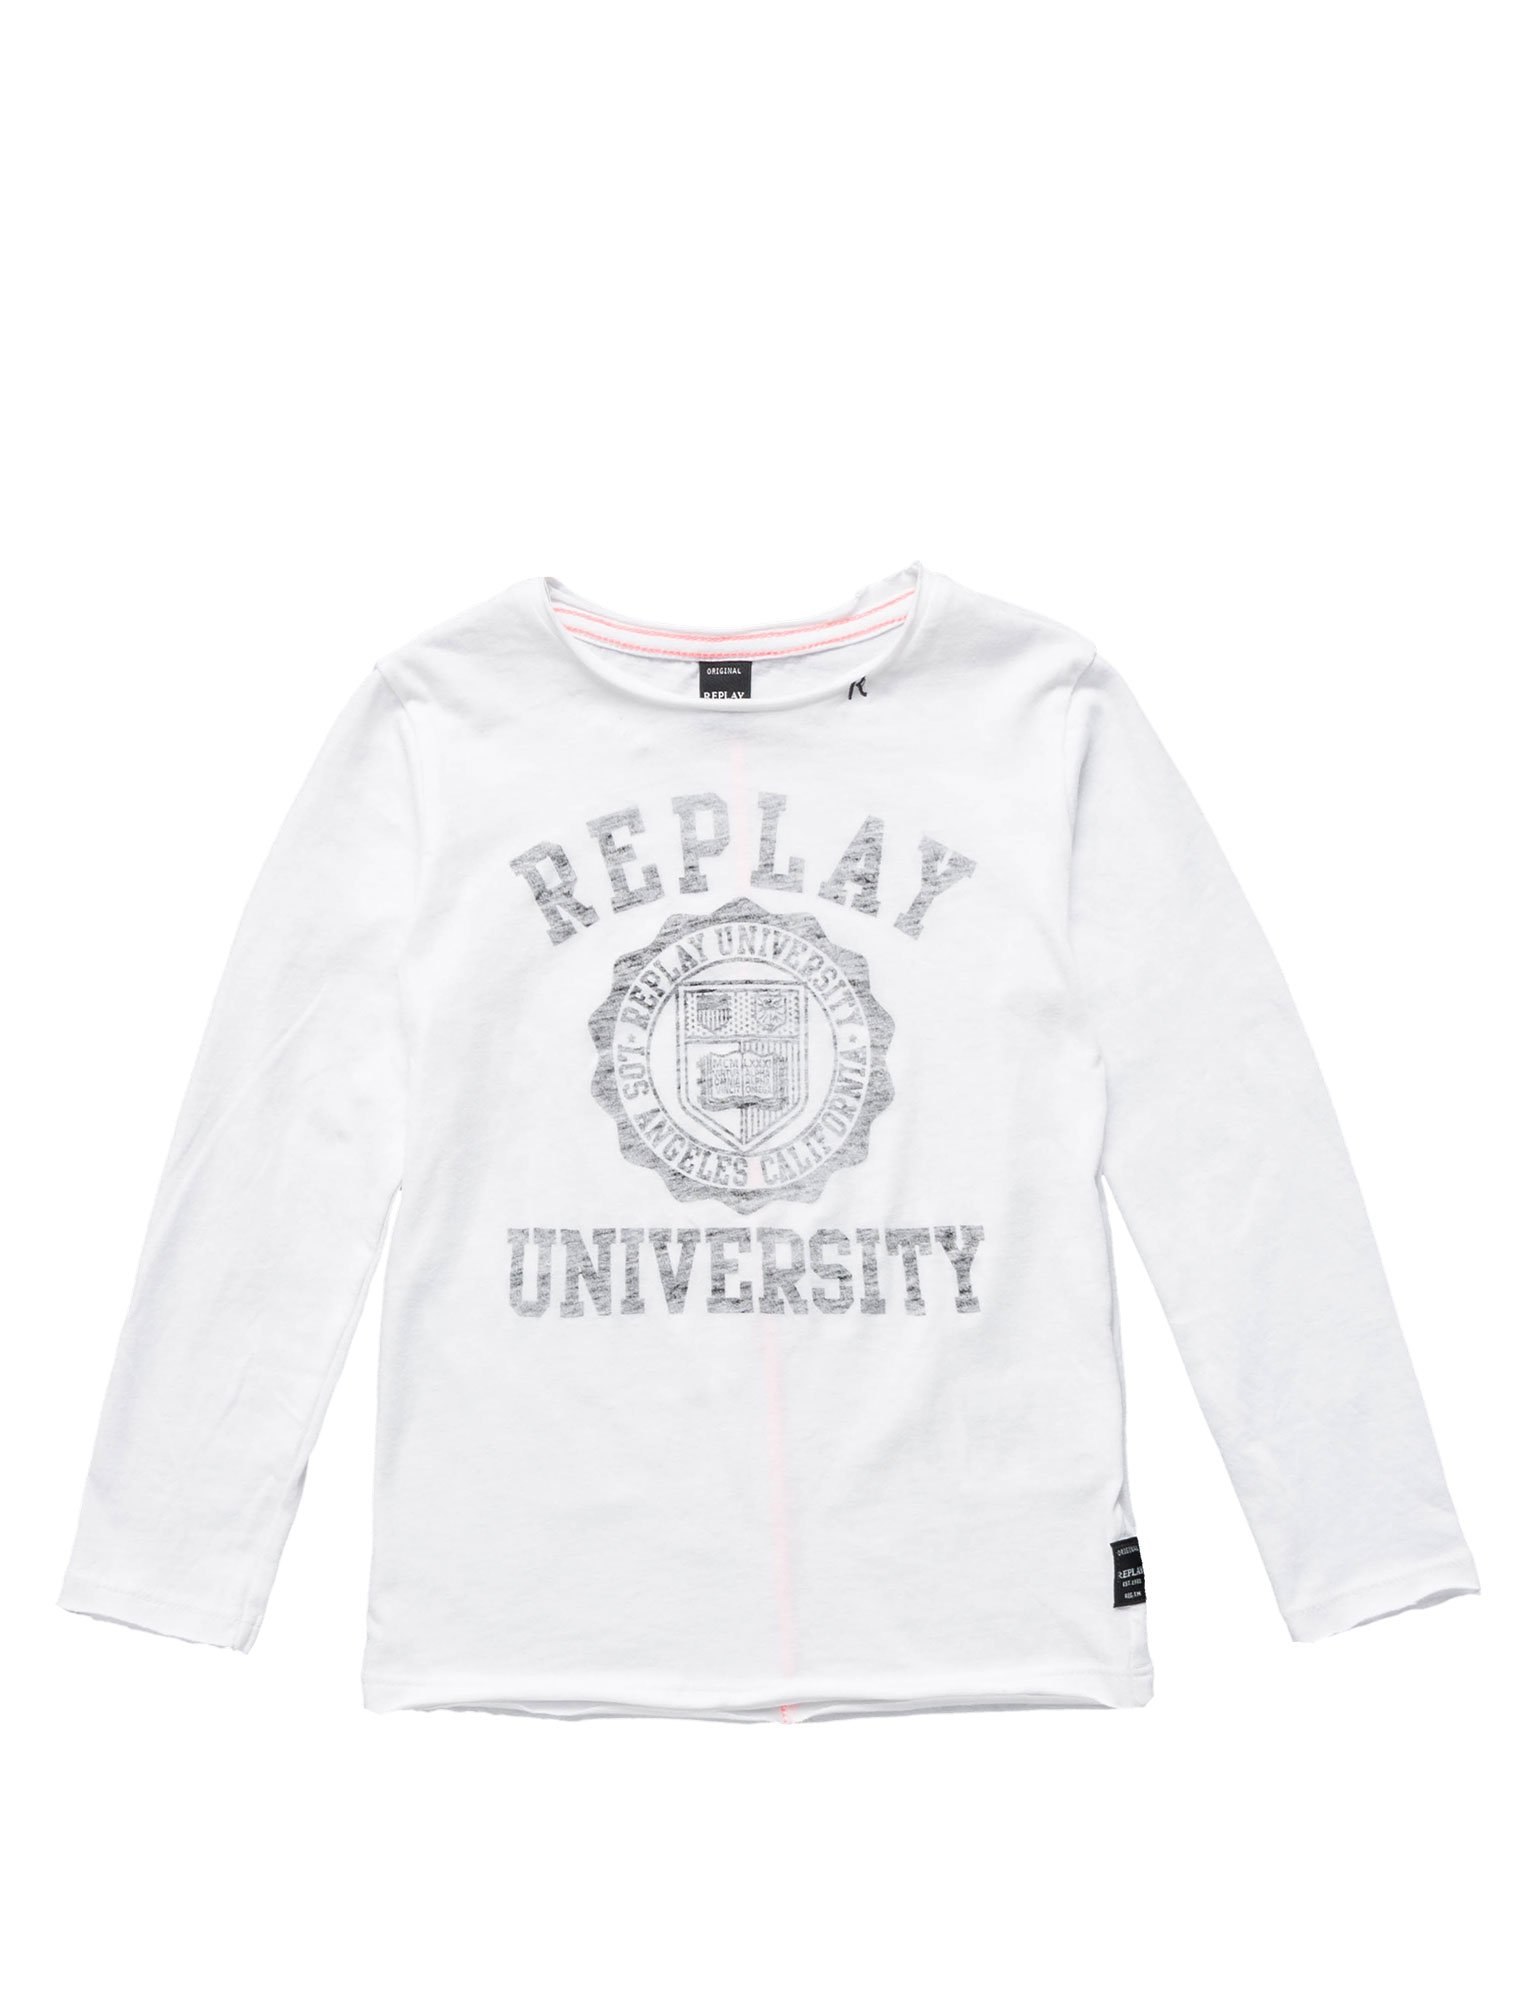 Replay Faded Print Boy's Top In White In Size 8 Years White